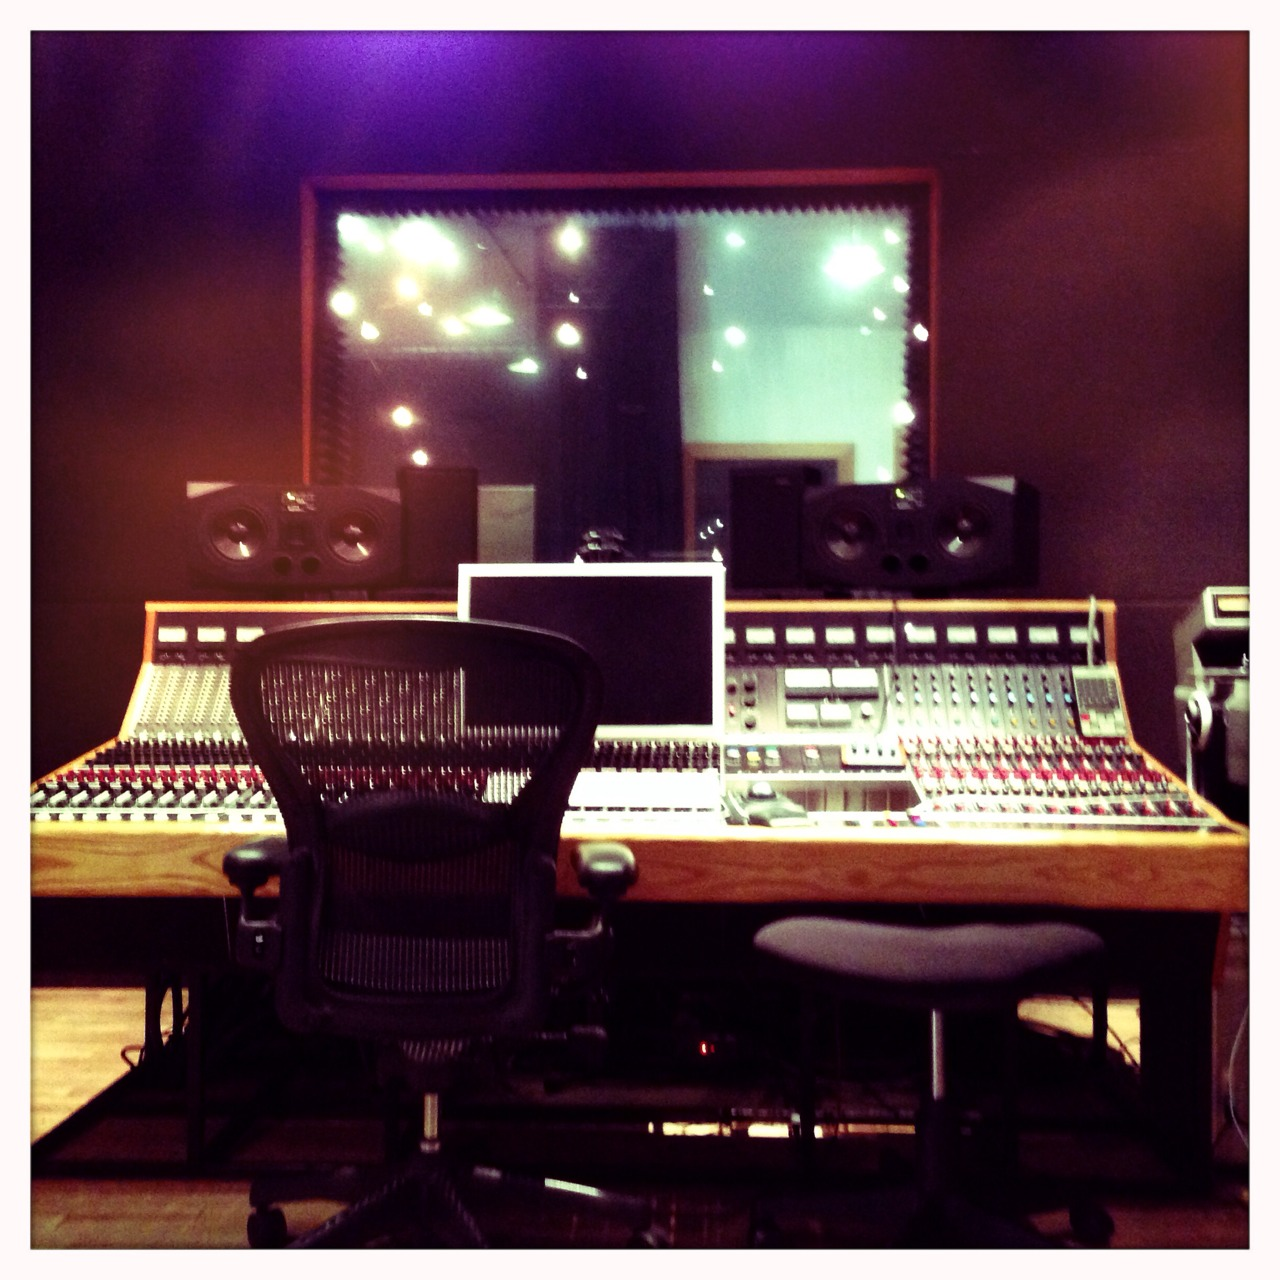 Mixing our debut LP at Soma Studios in a Wicker Park, day 1. Wish us luck!